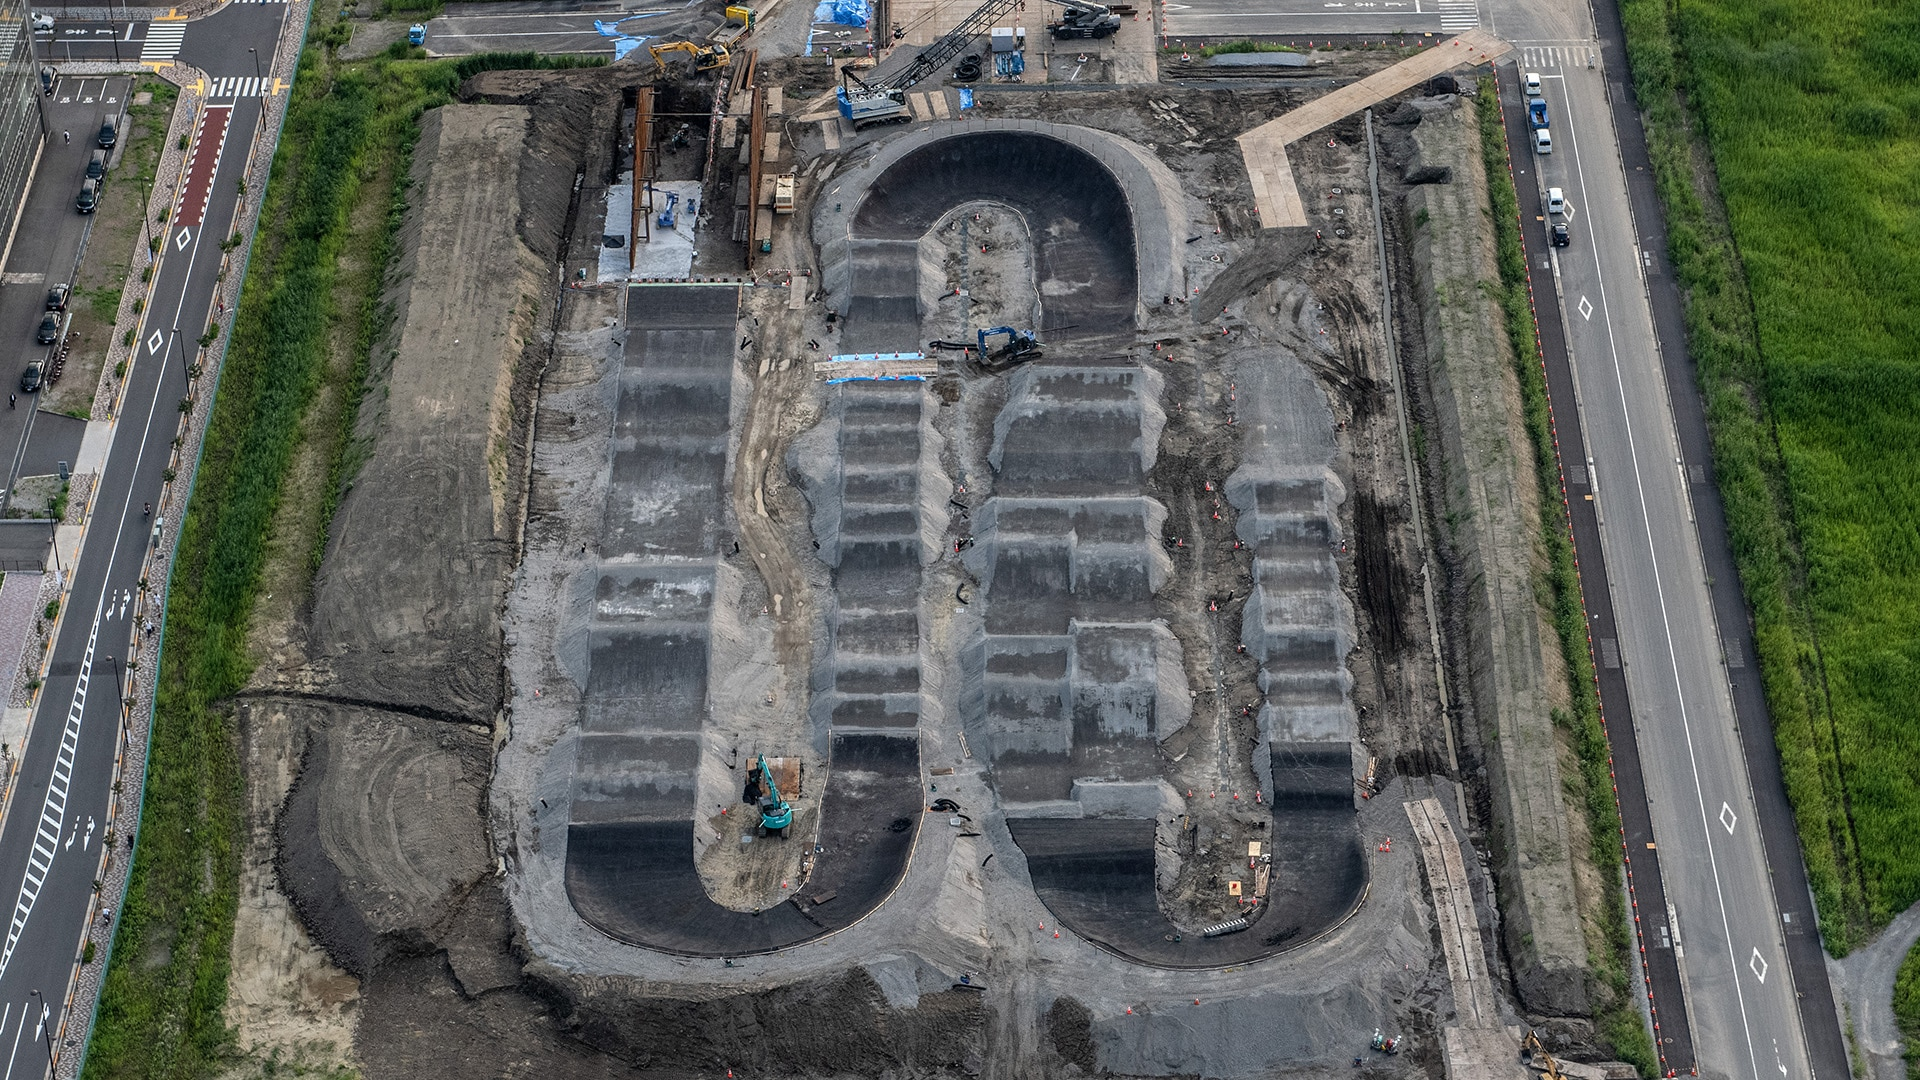 The BMX track which will form part of Ariake Urban Sports Park for the Tokyo Olympics is pictured in 2019